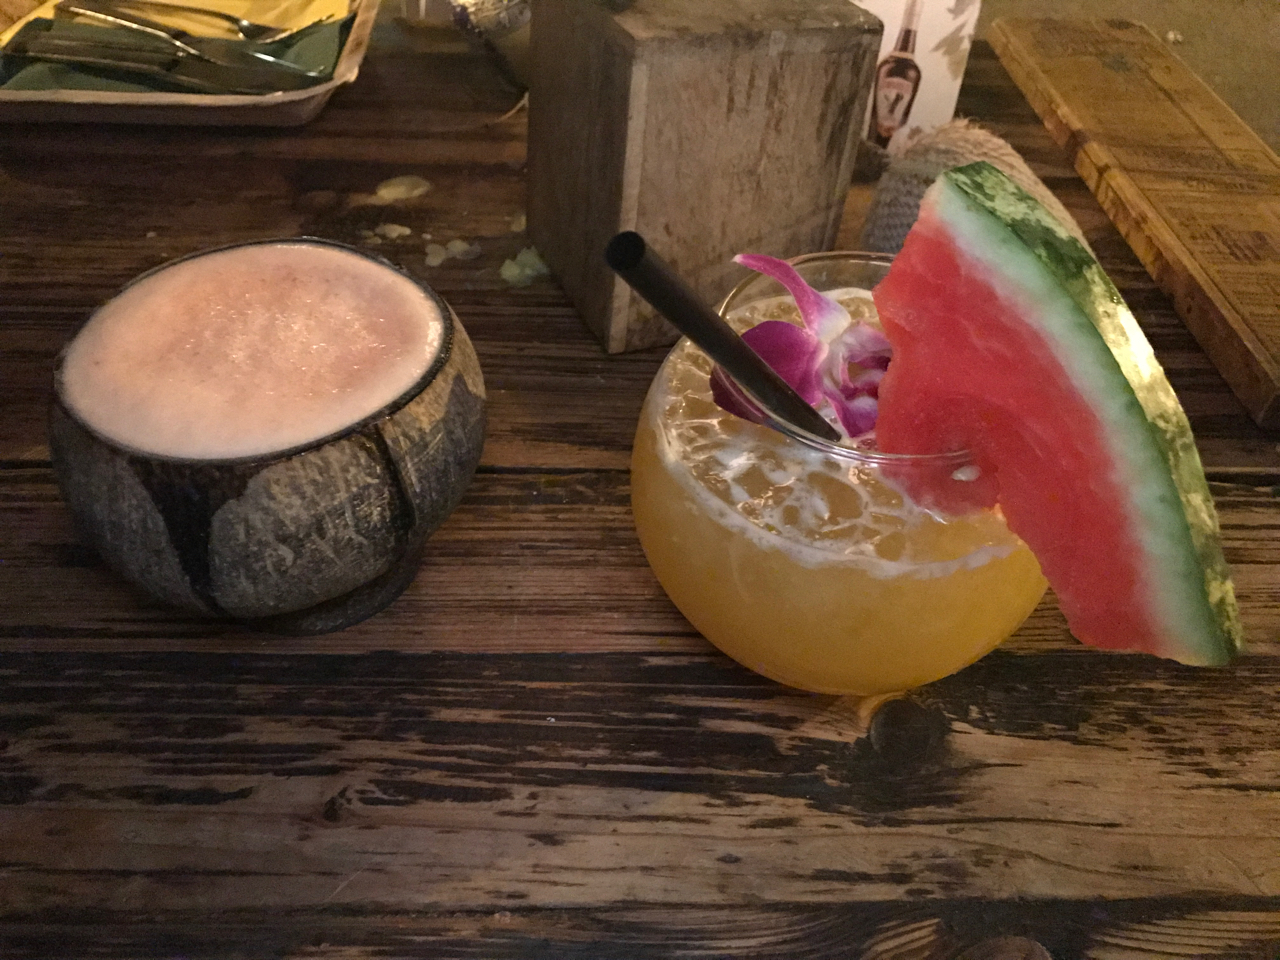 A photo of an African beer with guava in a coconut and the mama Africa drink at Ambiente Africa in Stuttgart, Germany. The mama Africa cocktail is made out of Dzama rum from Madagascar, coconut, melon liqueur, Triple Sec, orange, passionfruit and pineapple juice. (Mama Africa - Dzama rum, cocos, melonenlikör, Triple Sec, orangen, maracuja und ananassaff)